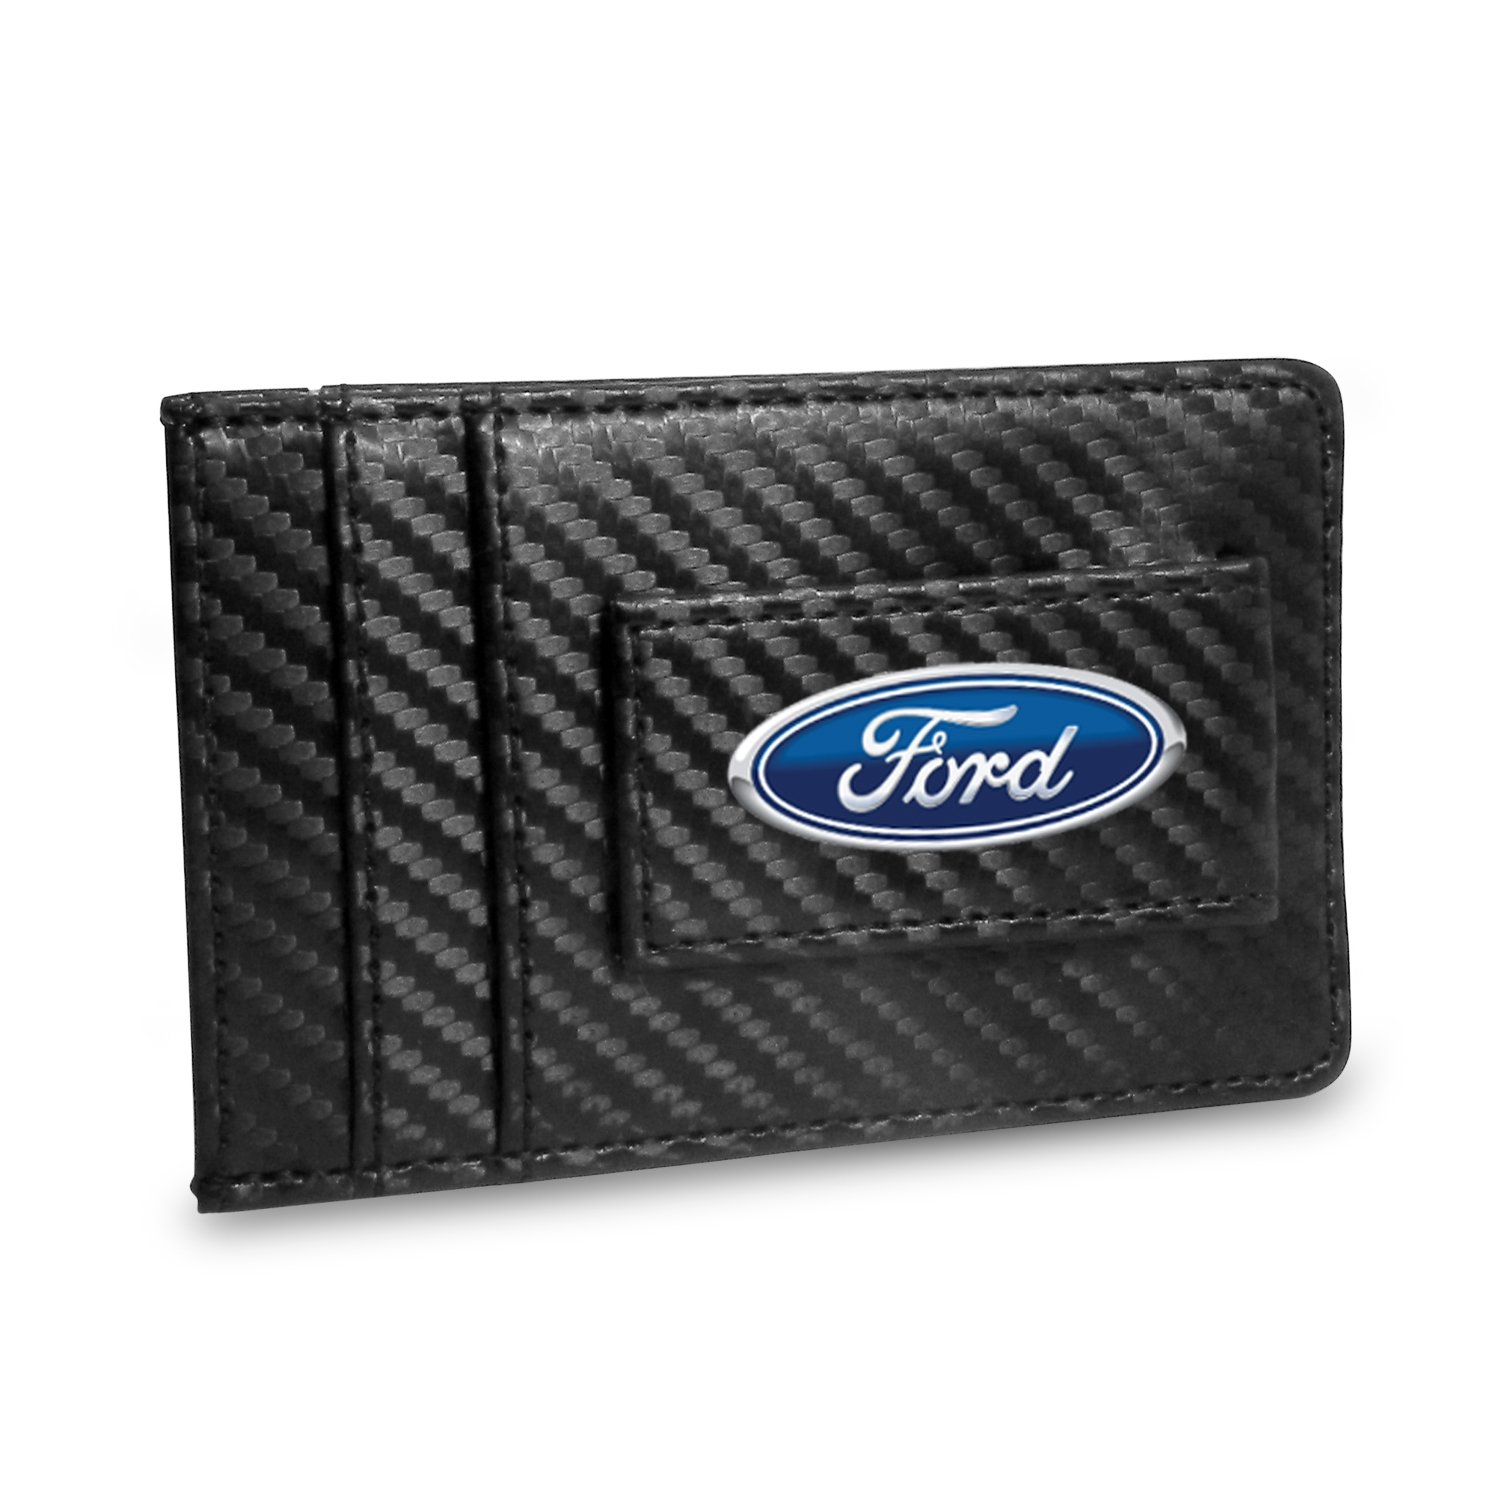 Ford Logo Black Carbon Fiber RFID Card Holder Wallet